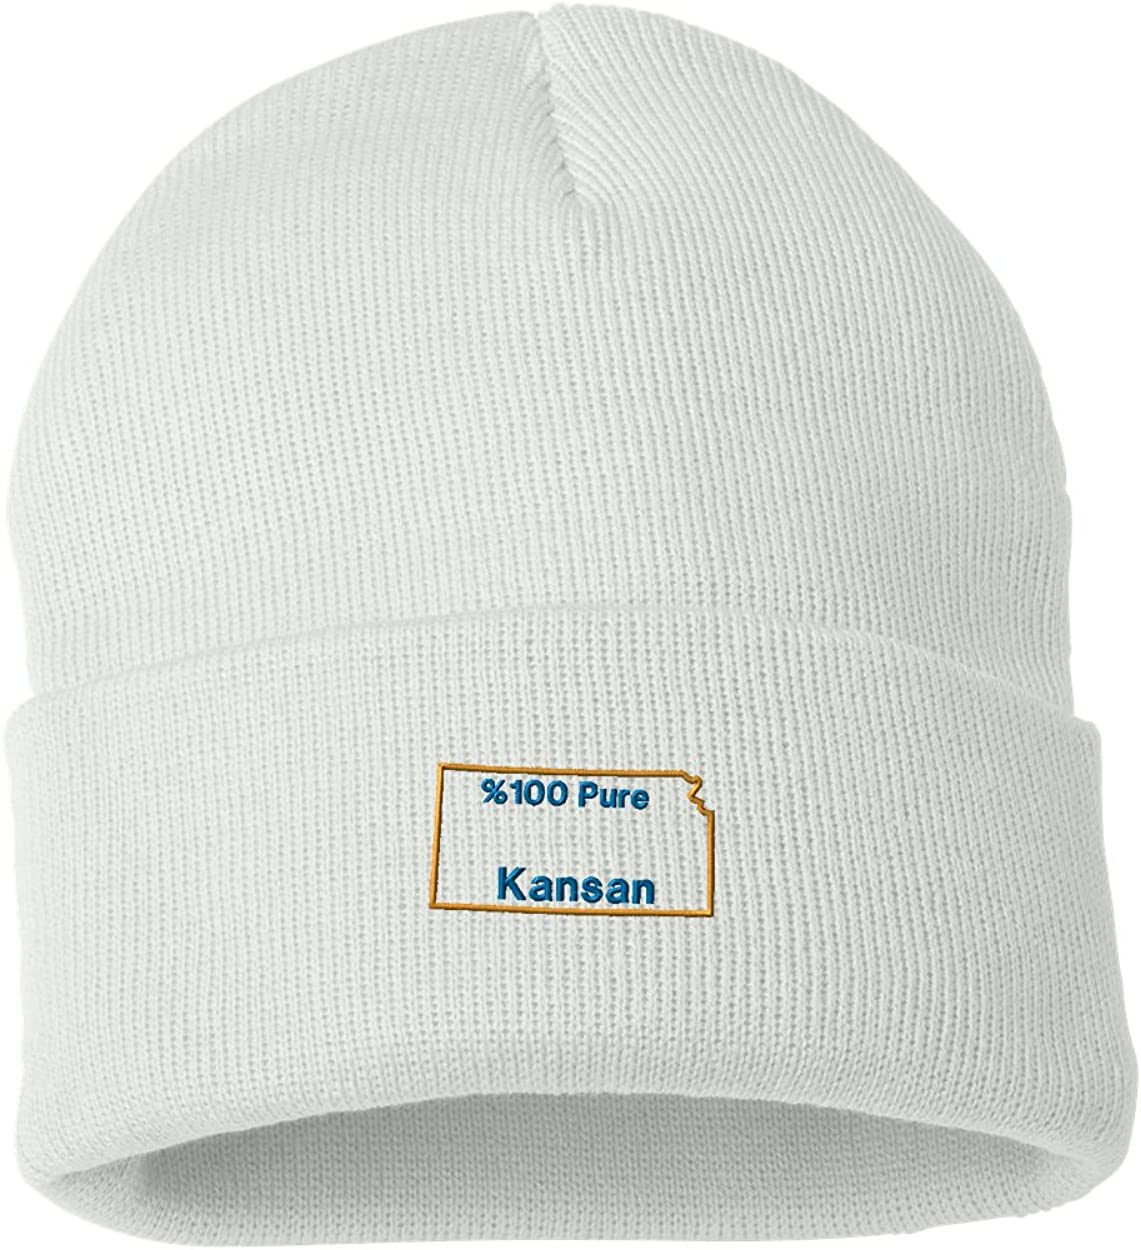 /%100 Pure Kansan Custom Personalized Embroidery Embroidered Beanie